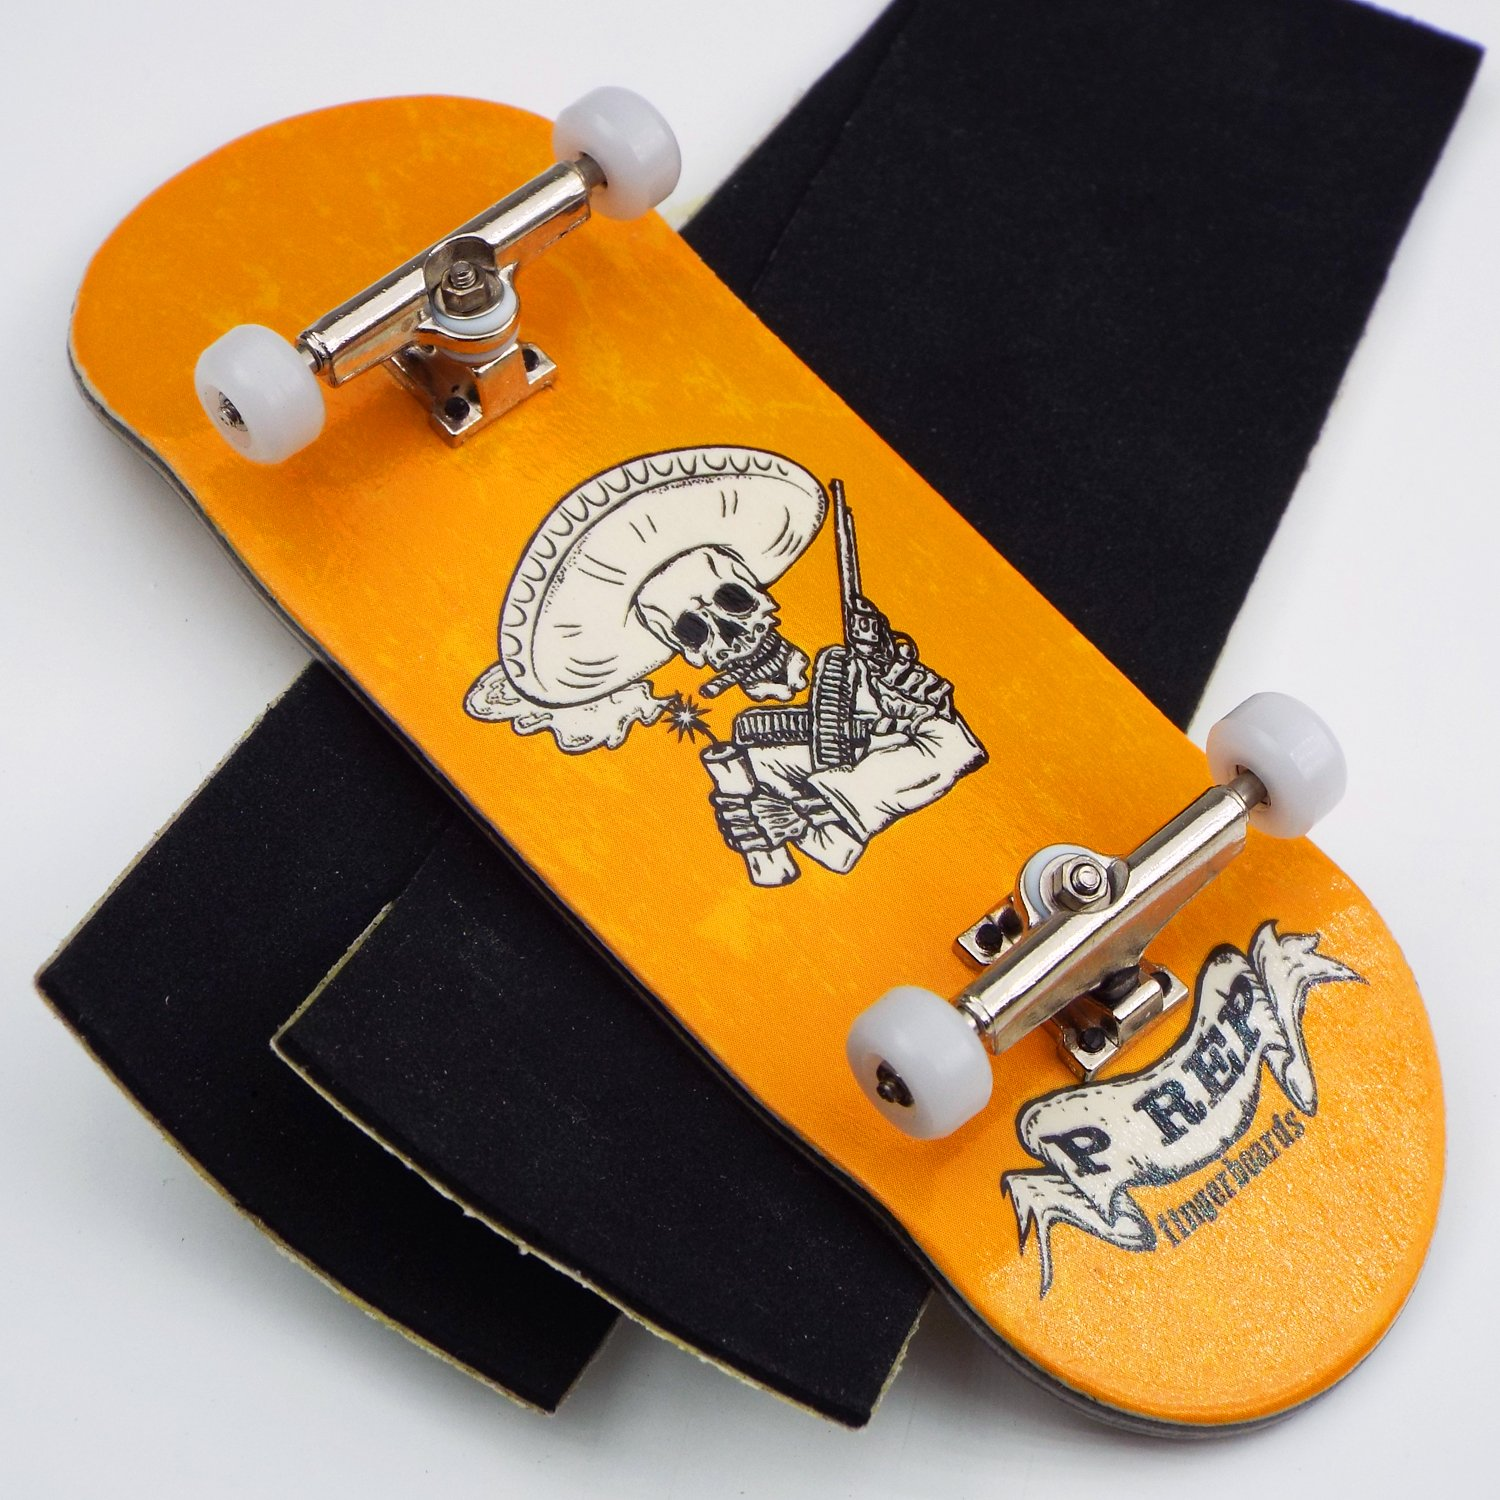 Peoples Republic P Rep Bandito 34mm Complete Wooden Fingerboard w CNC Lathed Bearing Wheels …